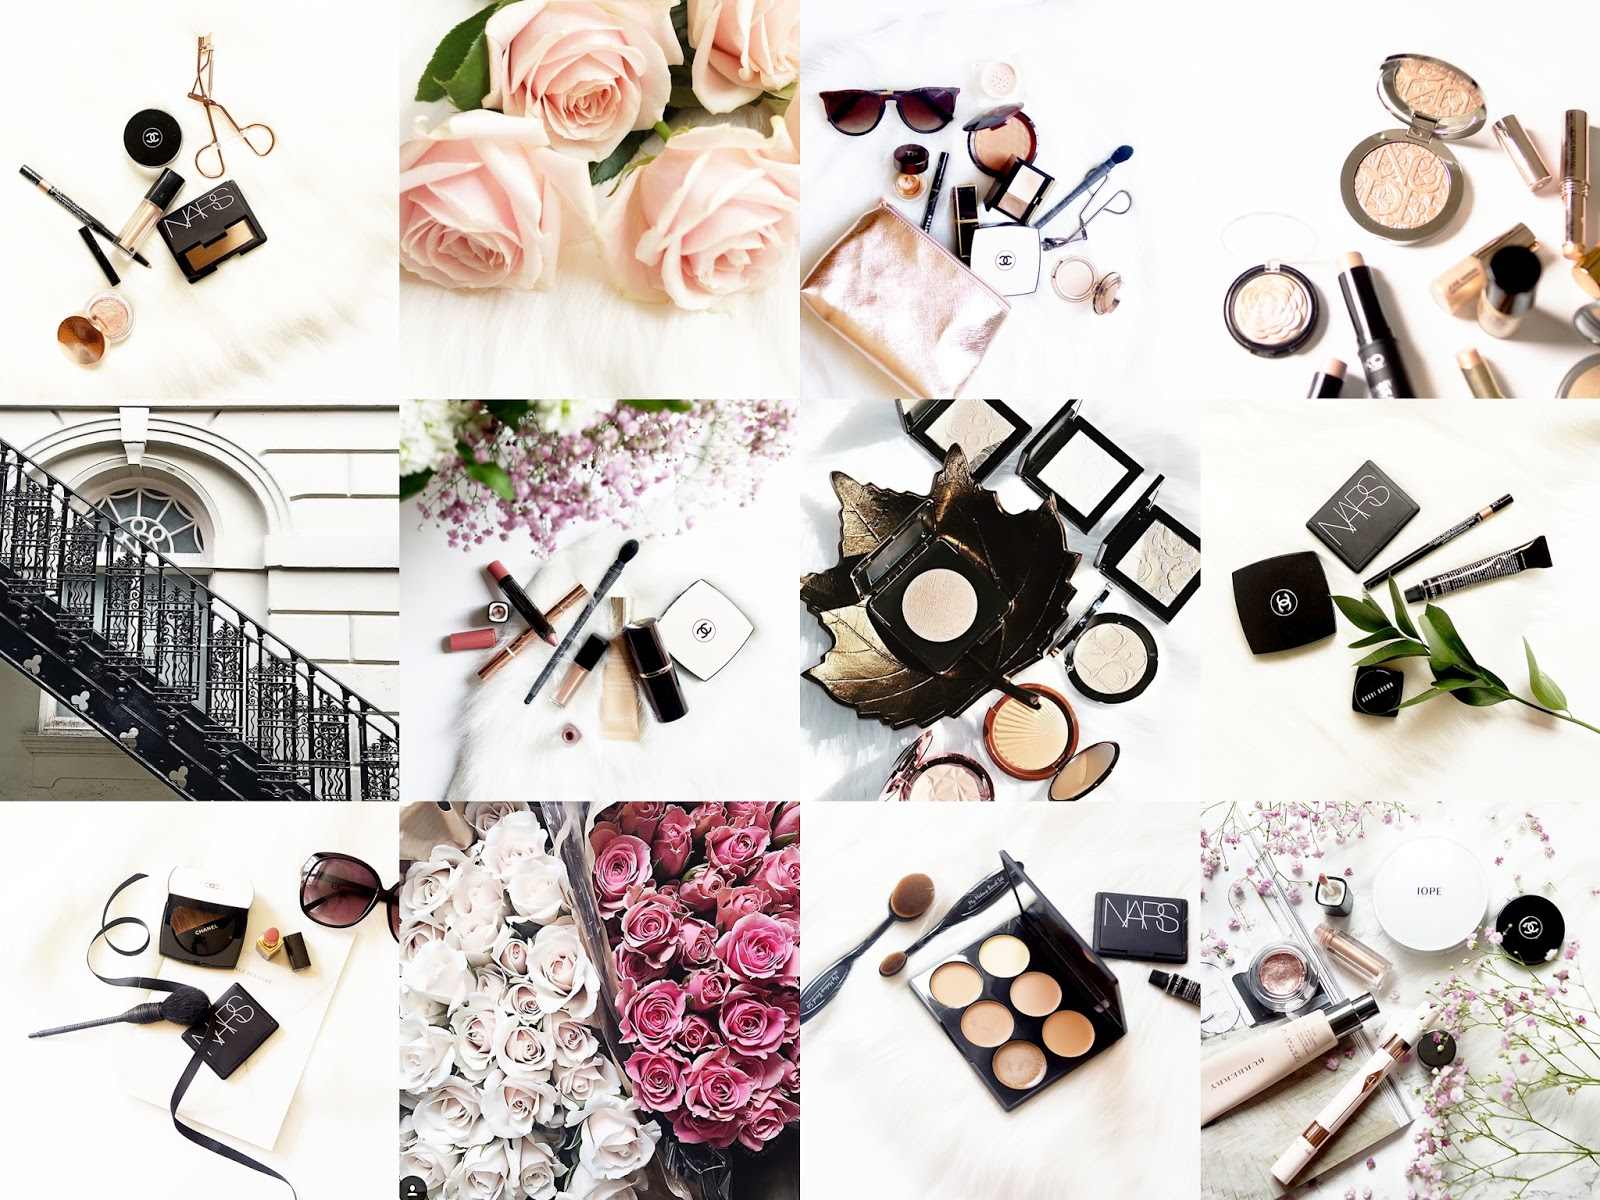 barely-there-beauty-instagram-photography-flatlays-makeup